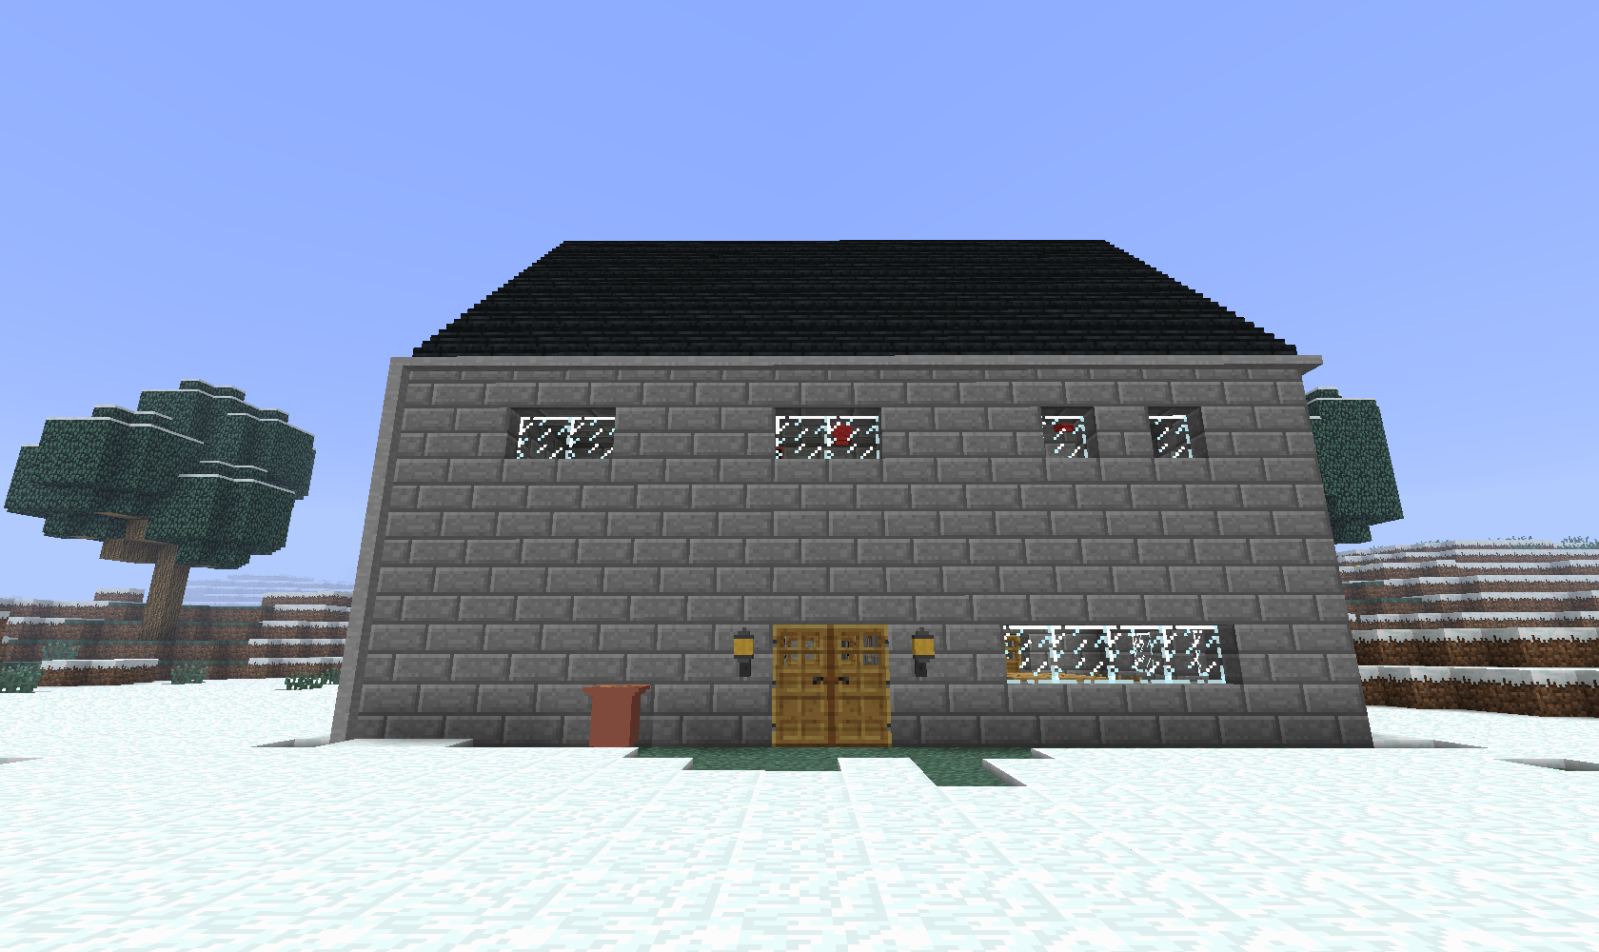 http://www.beginminecraft.com/wp-content/uploads/2013/05/Jammy-Furniture-Mod-212.png